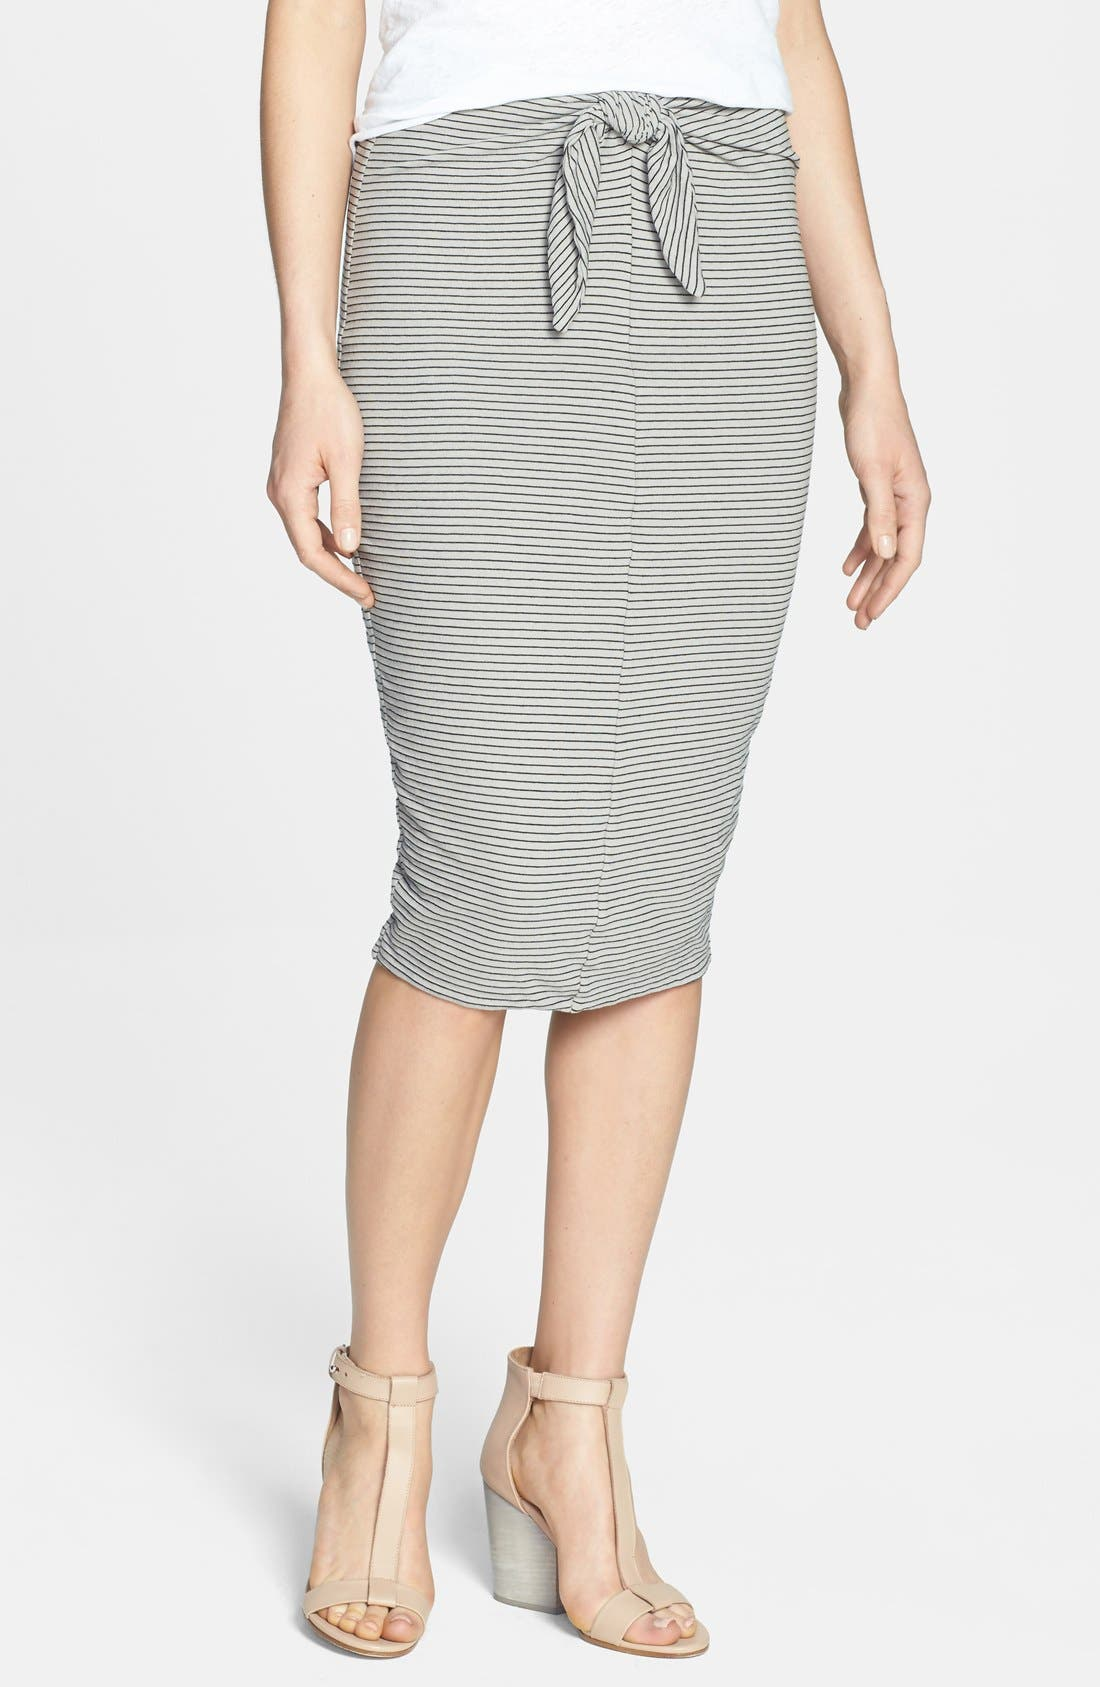 Alternate Image 1 Selected - James Perse Stripe Tie Front Tube Skirt